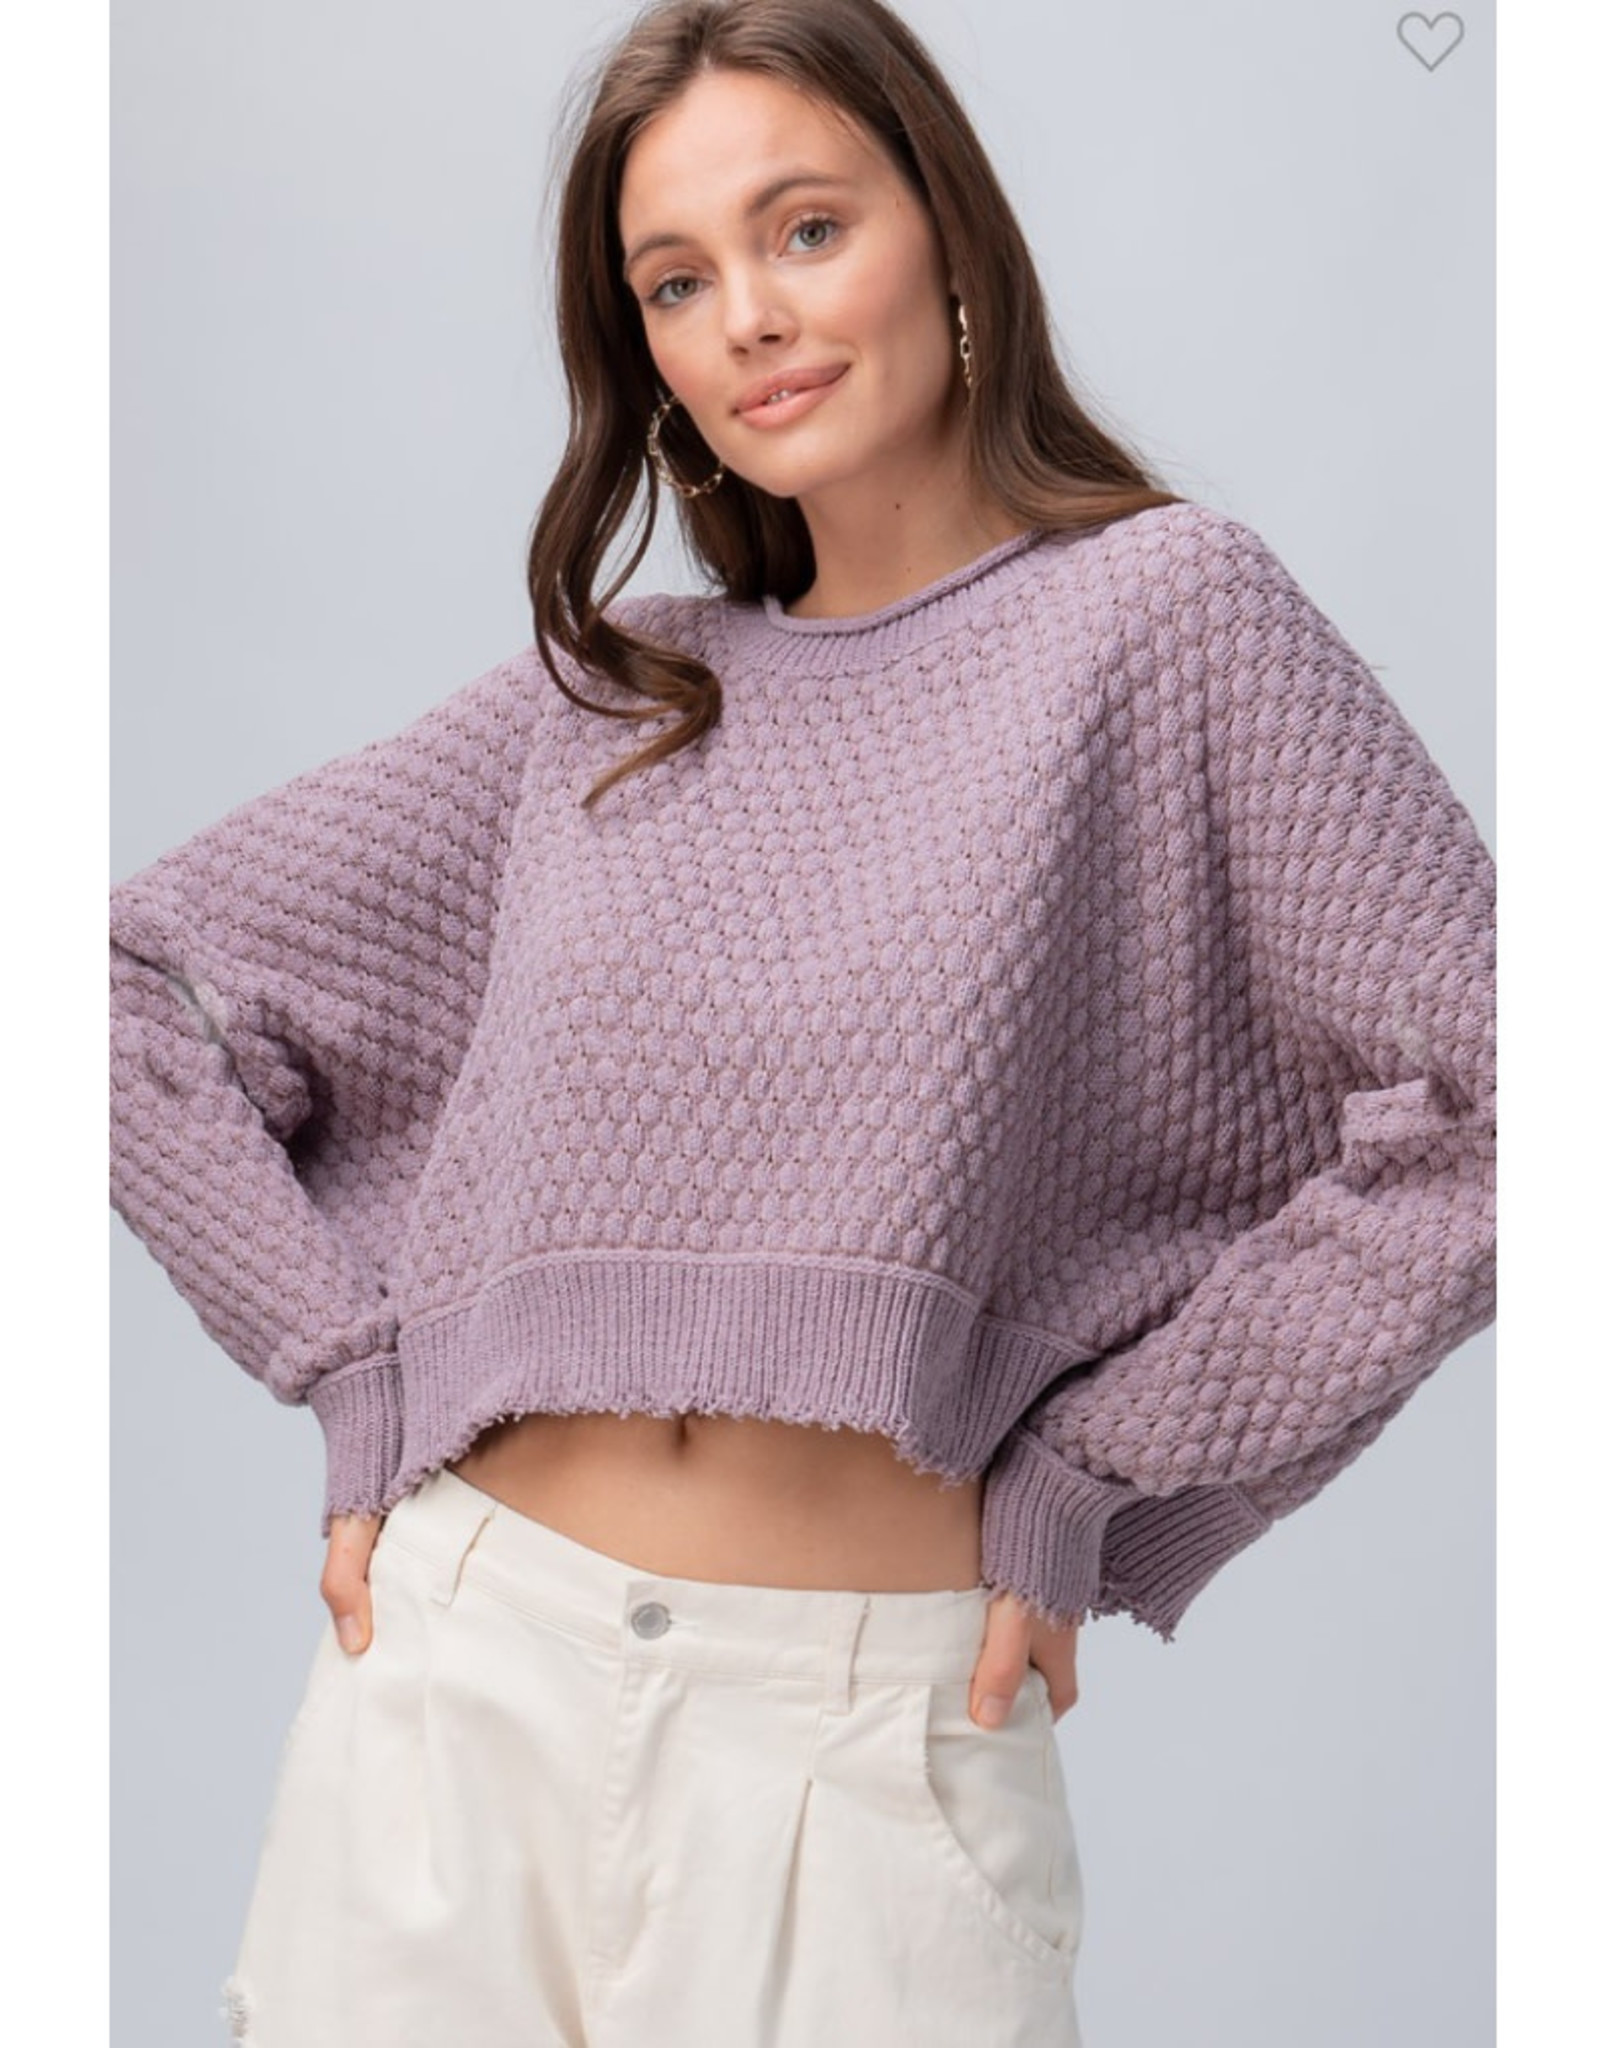 Popcorn Knit Sweater with Dolman Sleeves - Lavender